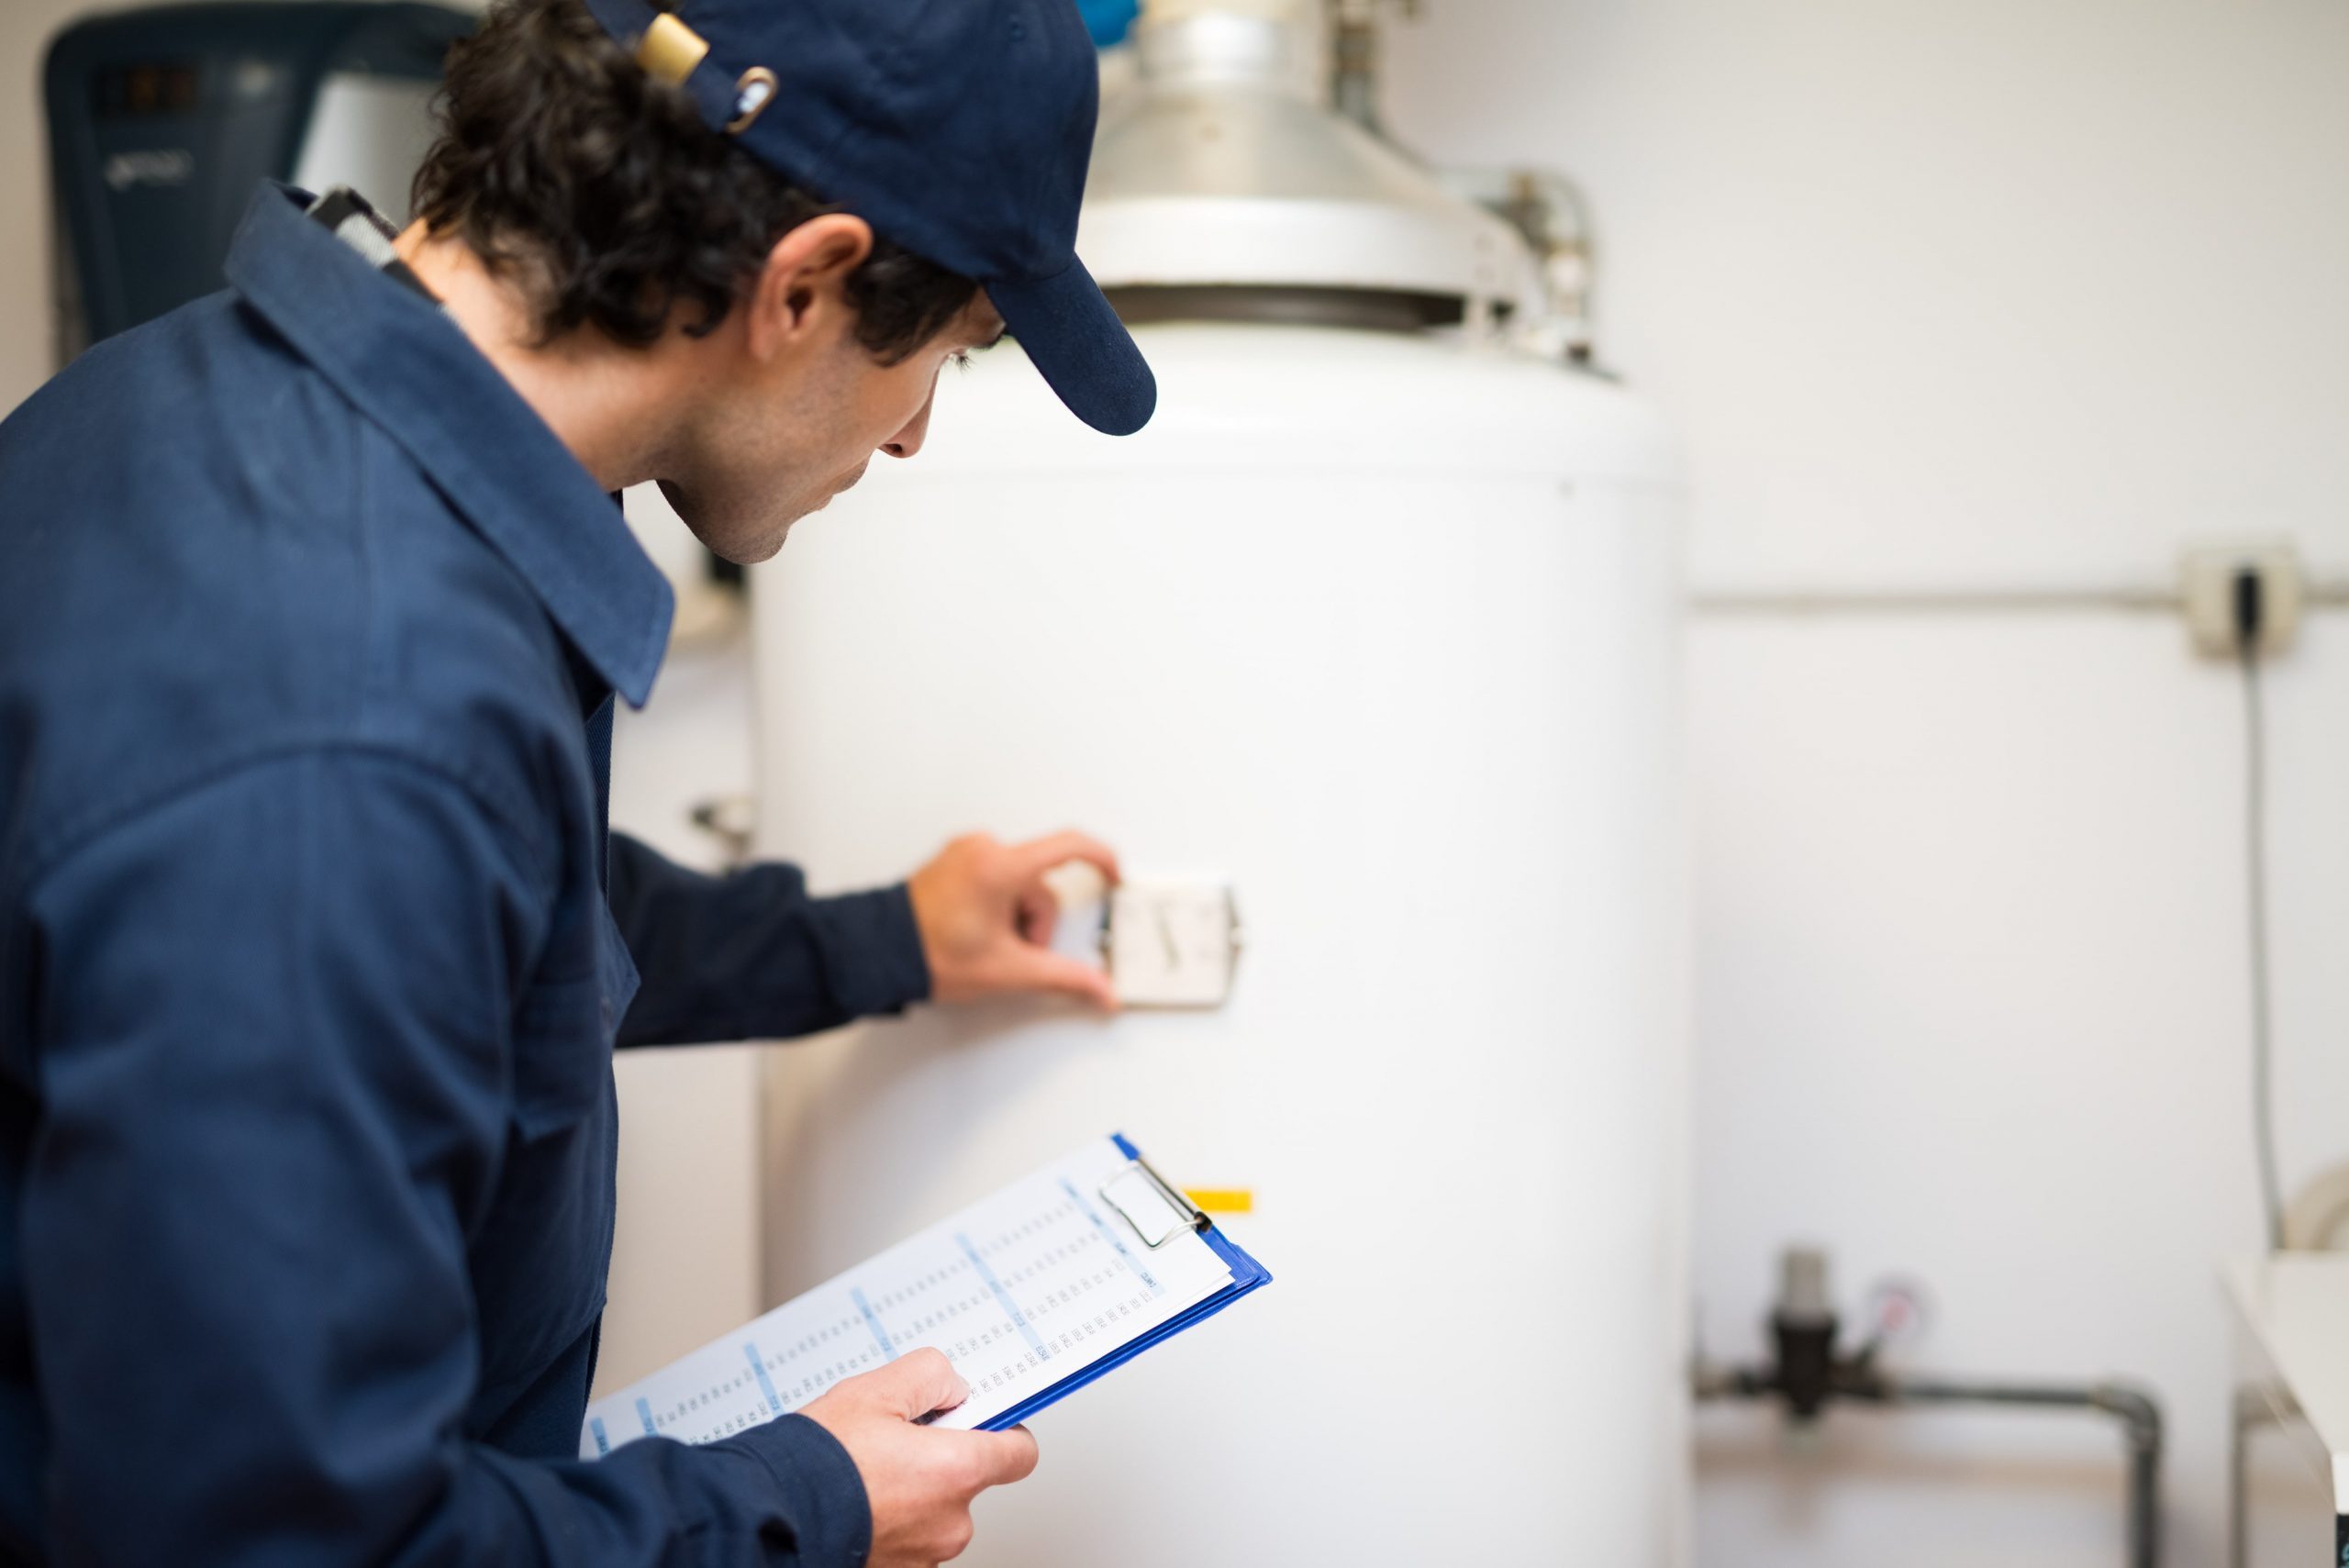 Domestic hot water safety tips